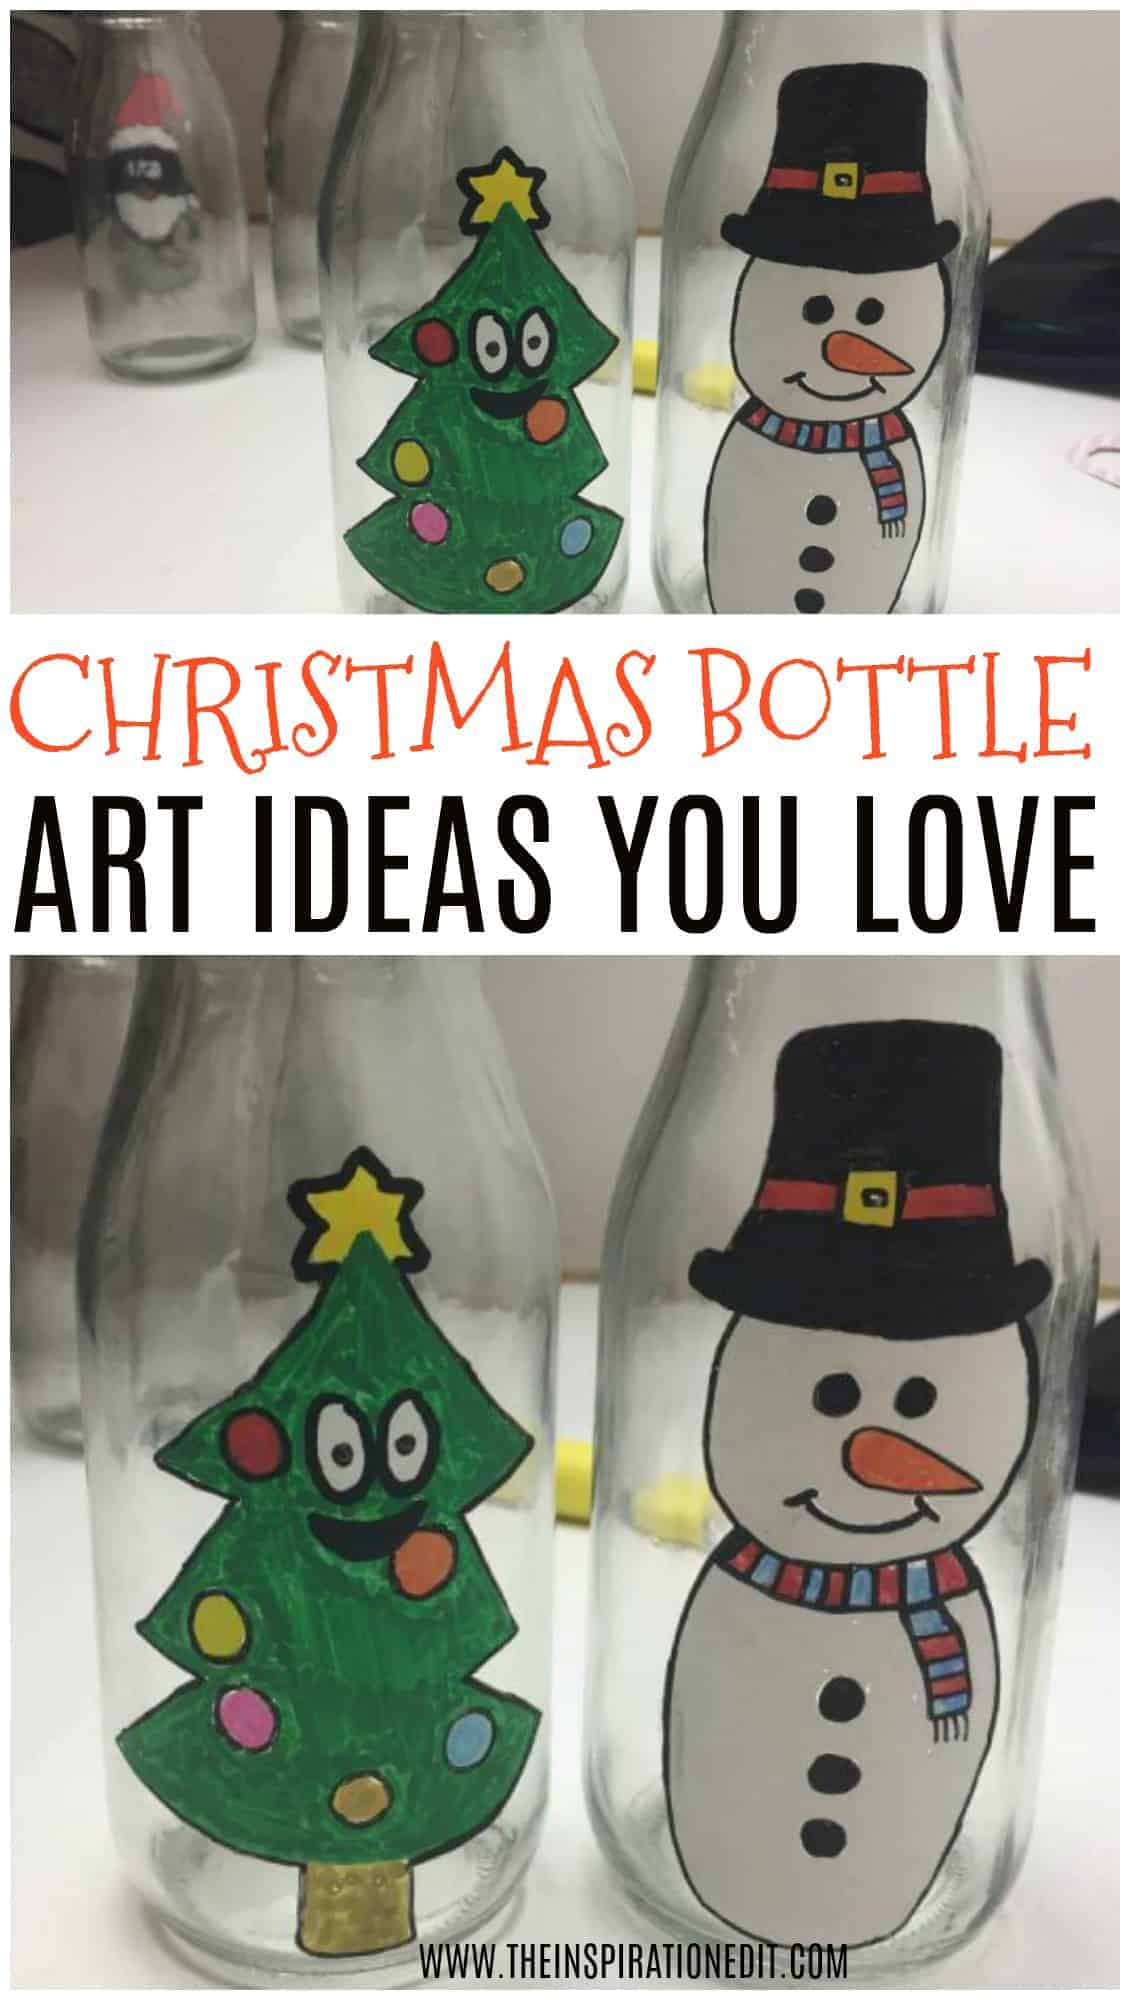 CHRISTMAS BOTTLE ART